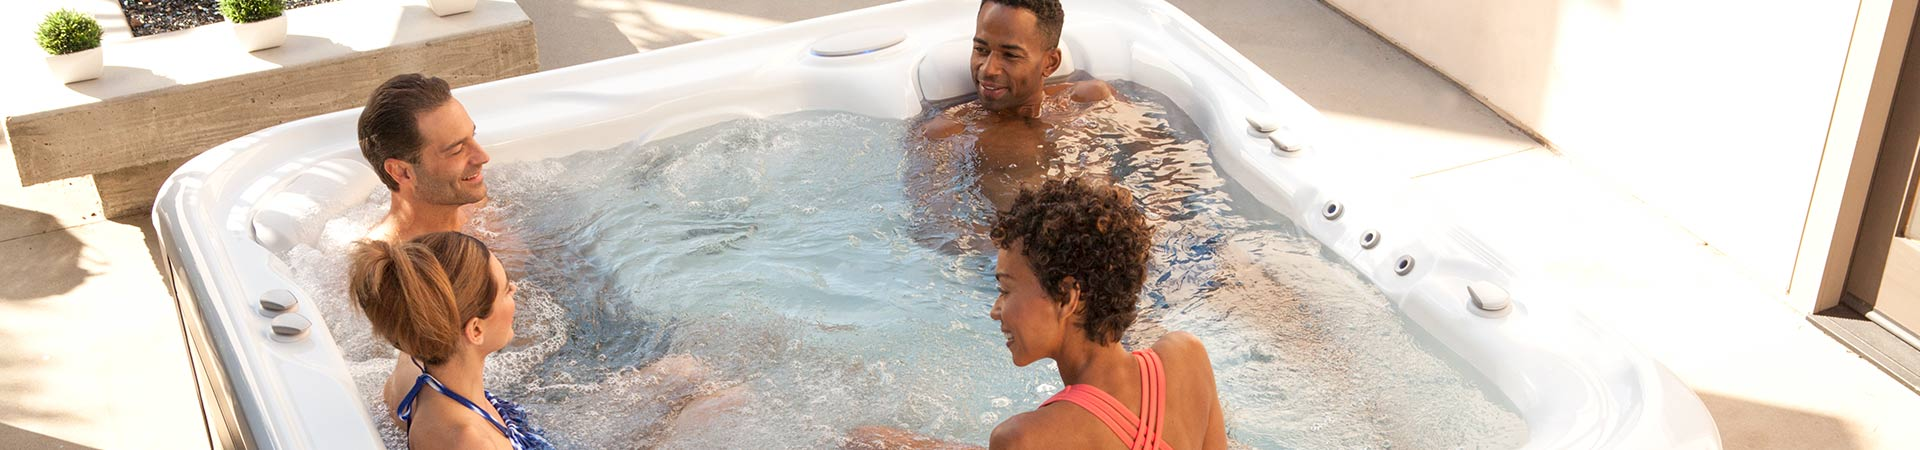 5 Accessories to Enhance Your Hot Tub Experience